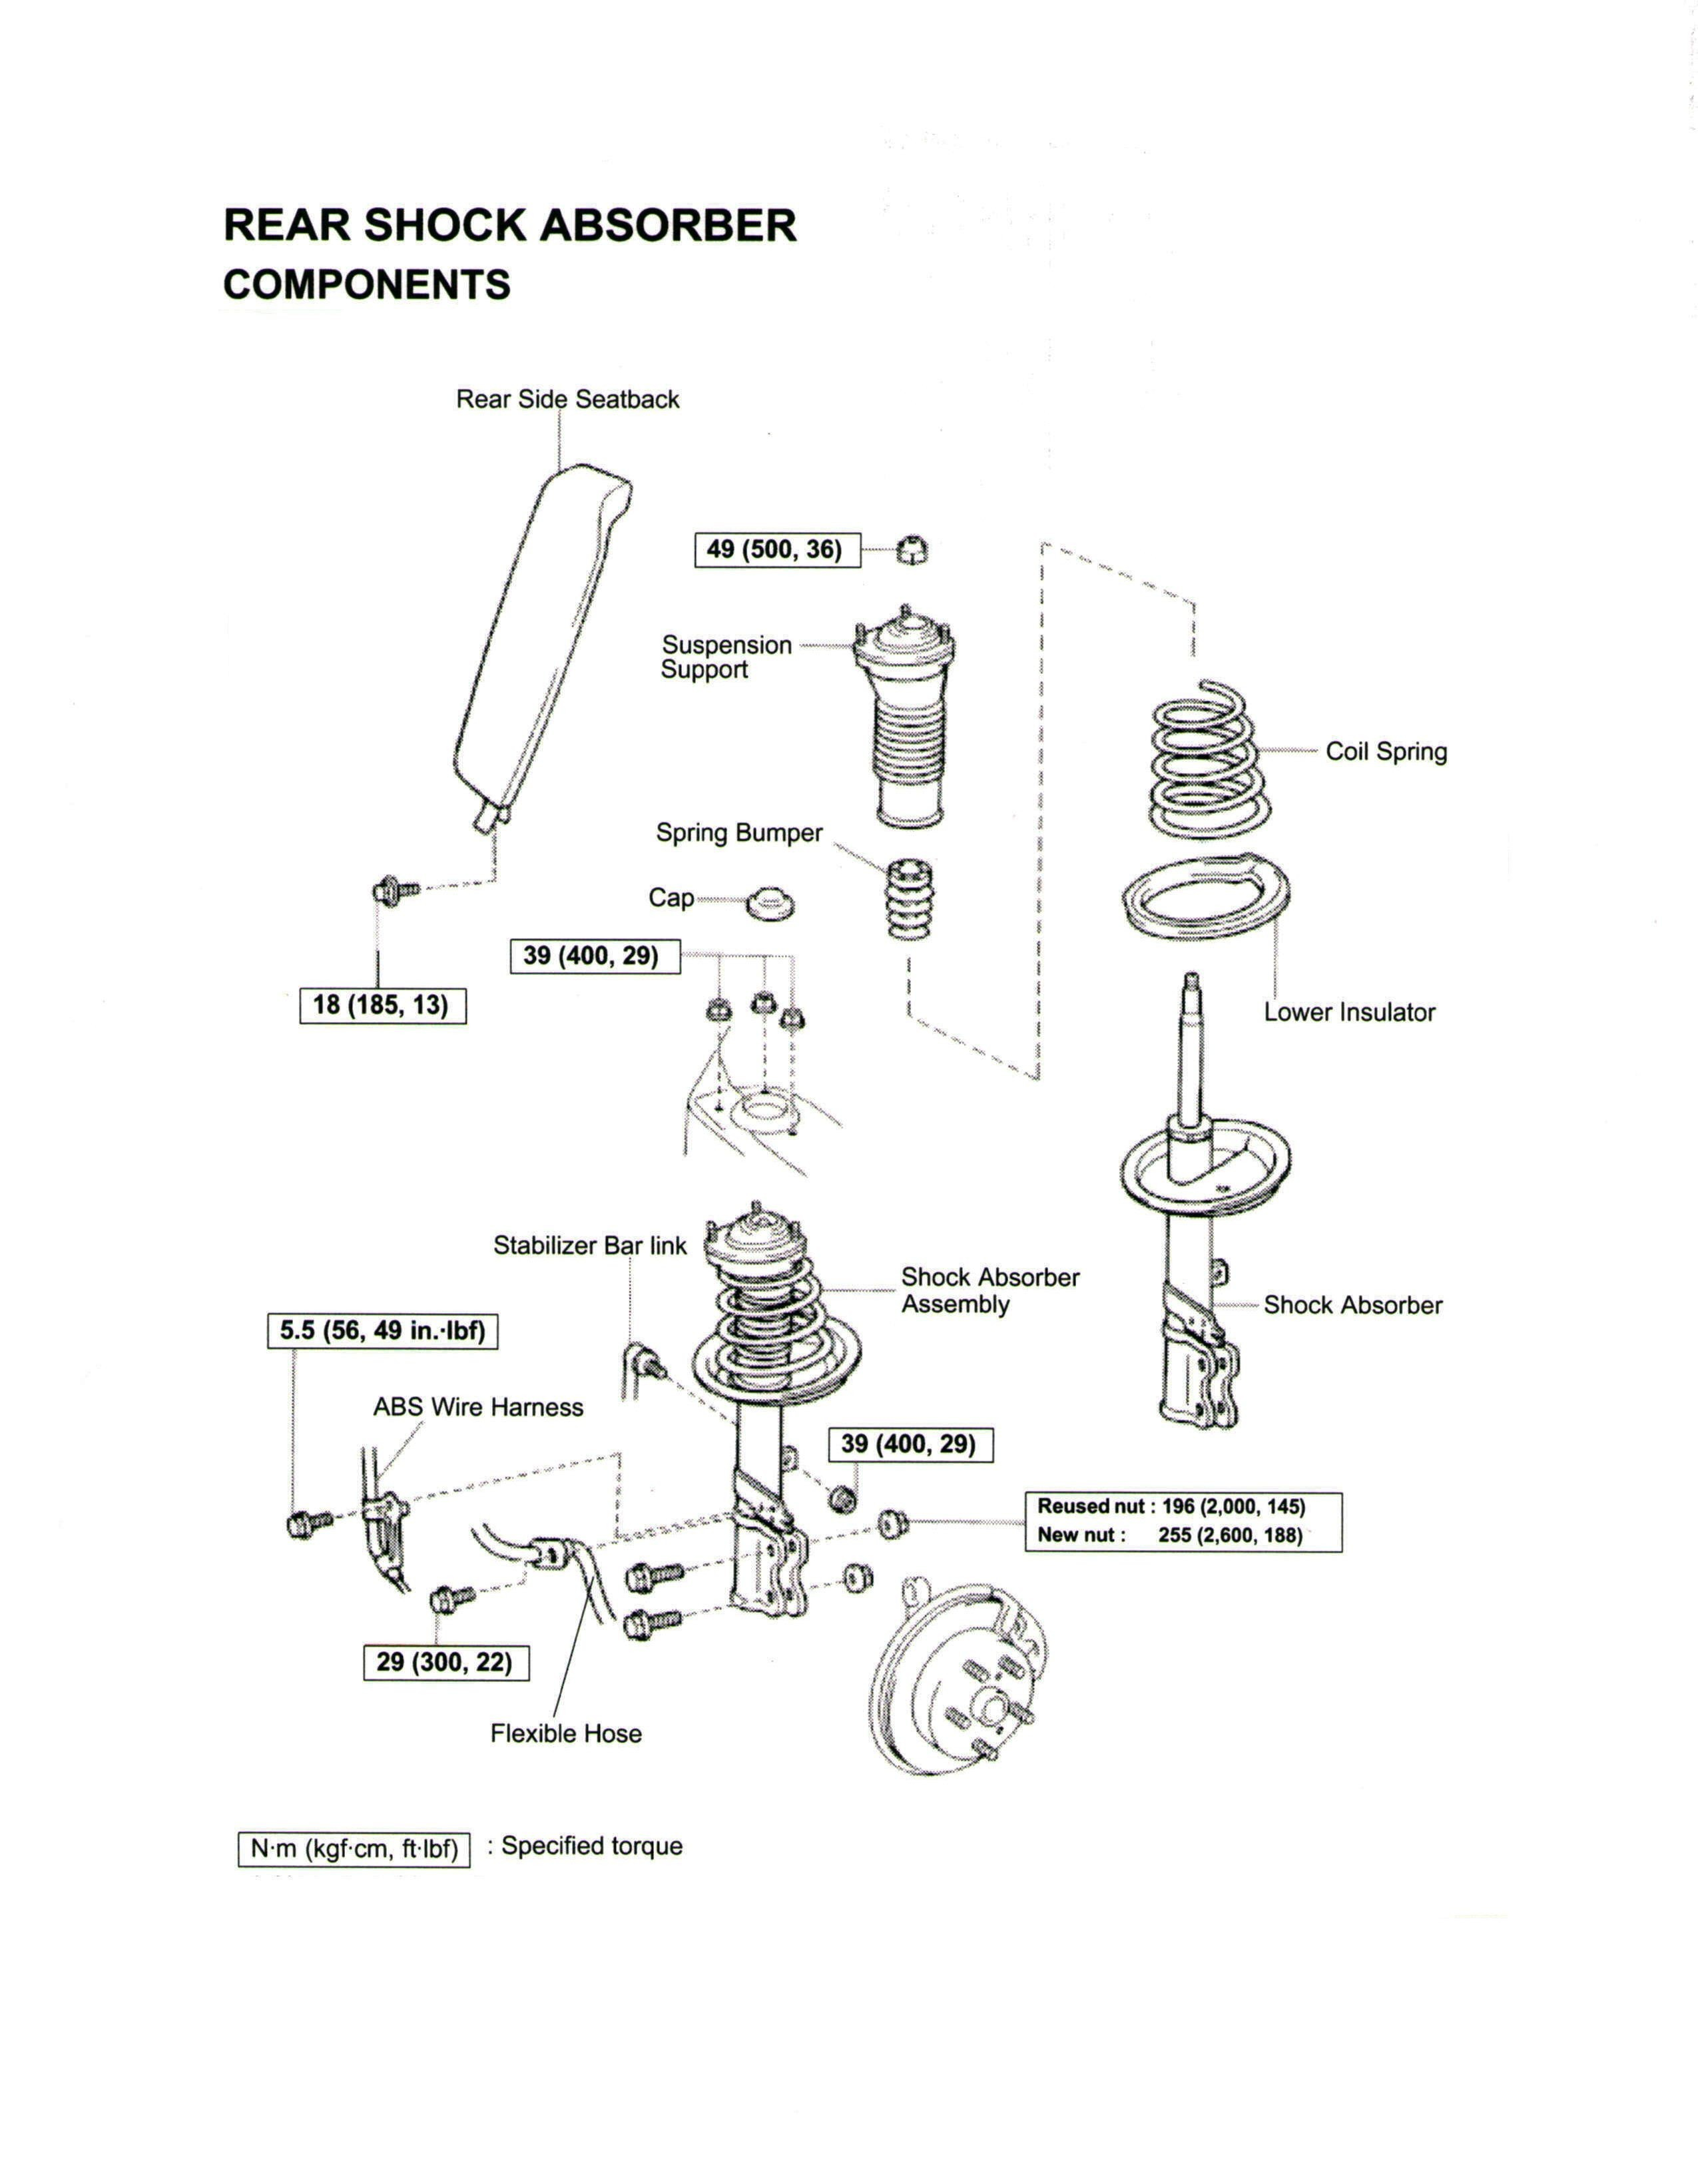 1997 toyota Corolla Engine Diagram 1997 toyota Camry Engine Diagram Replacing the Rear Strut and or Of 1997 toyota Corolla Engine Diagram